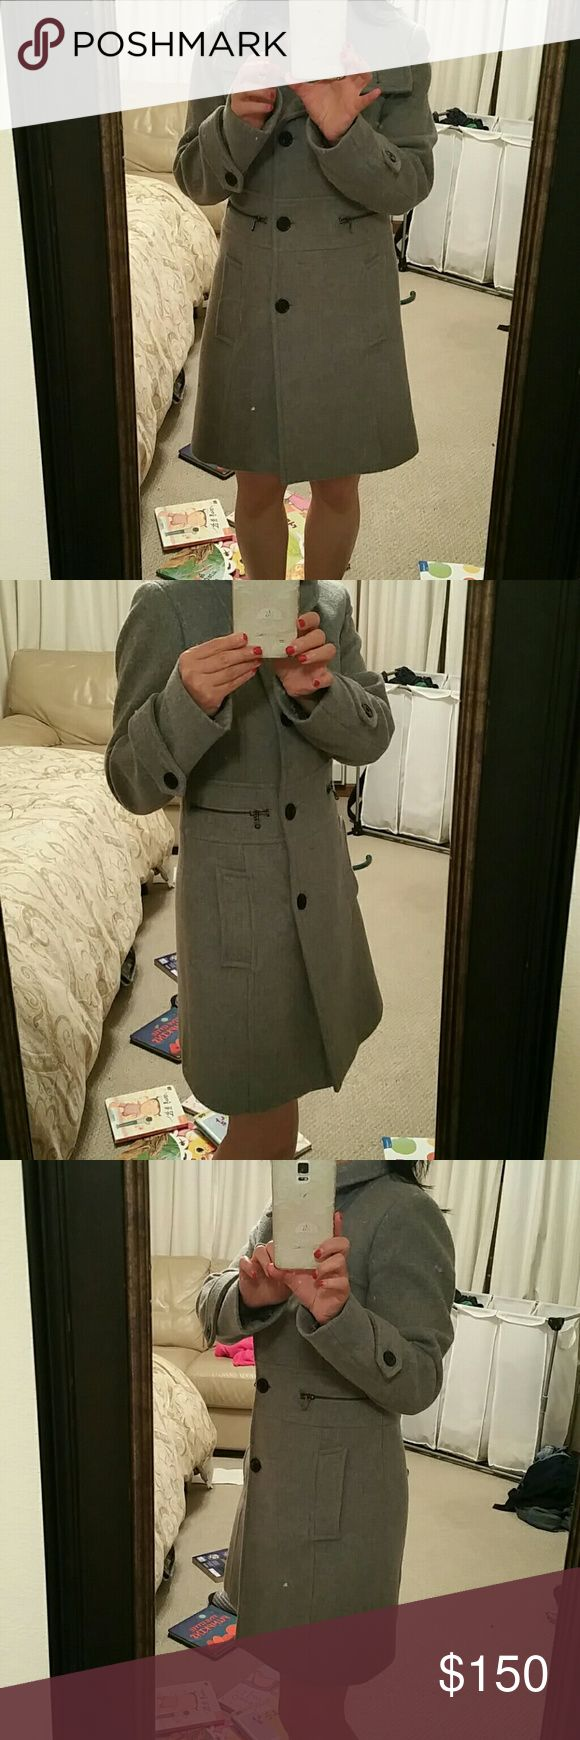 Andrew Marc Coat Beautiful coat. Wore maybe a couple of times. Have too many winter coats and live in California. Excellent condition. Andrew Marc Jackets & Coats Trench Coats